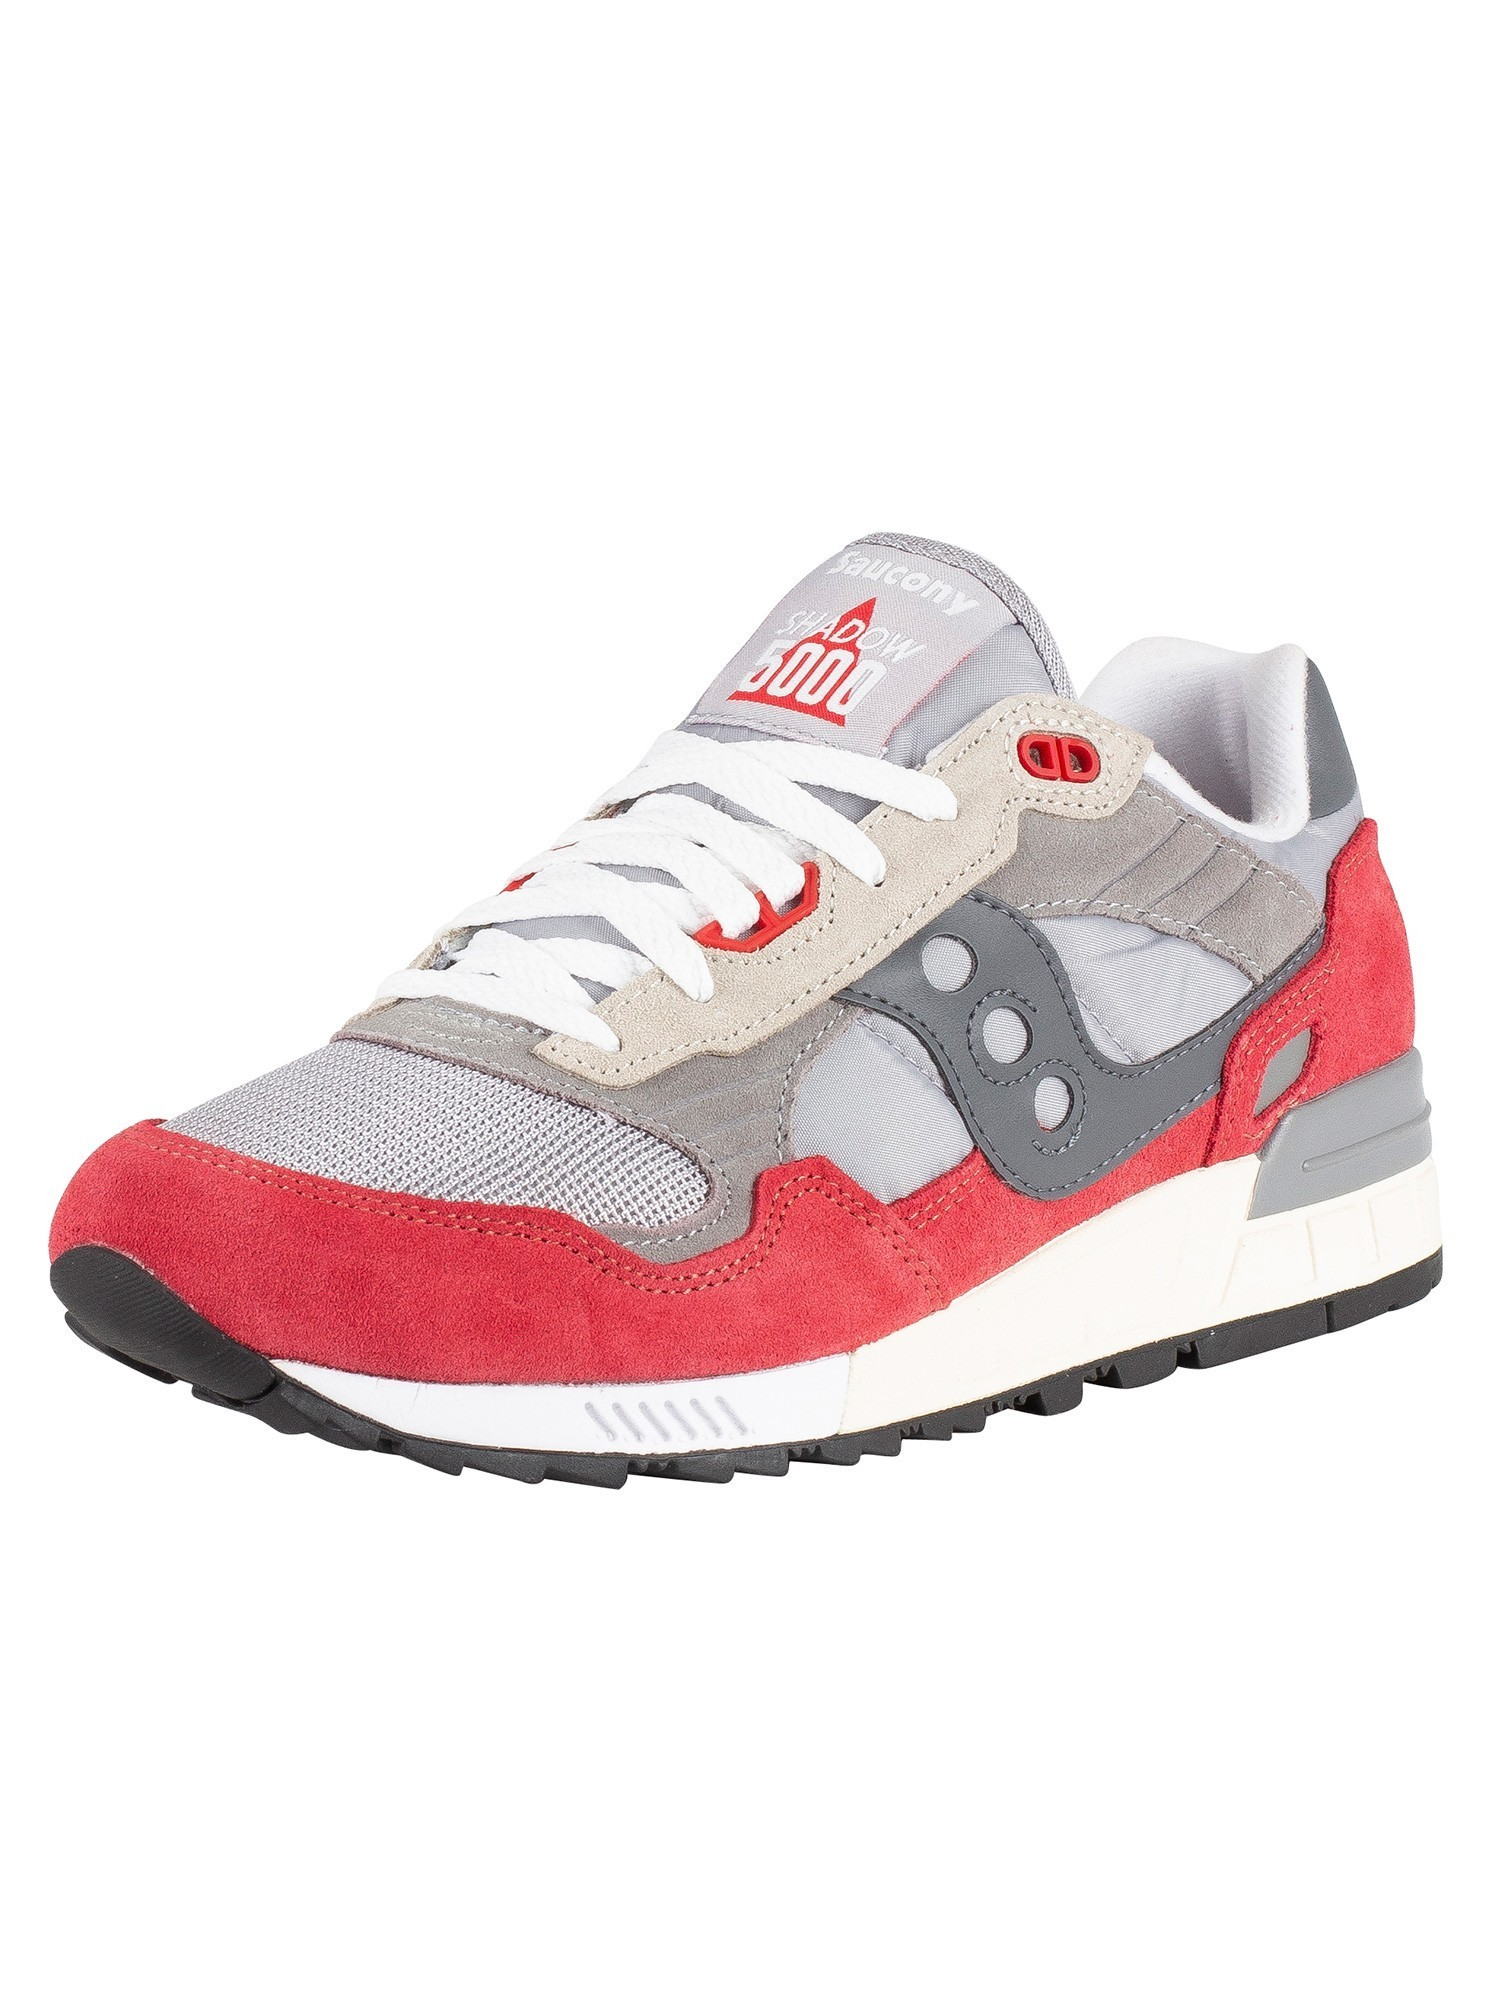 meet 840d4 0272a Saucony Shadow 5000 Vintage Trainers - Grey/Red